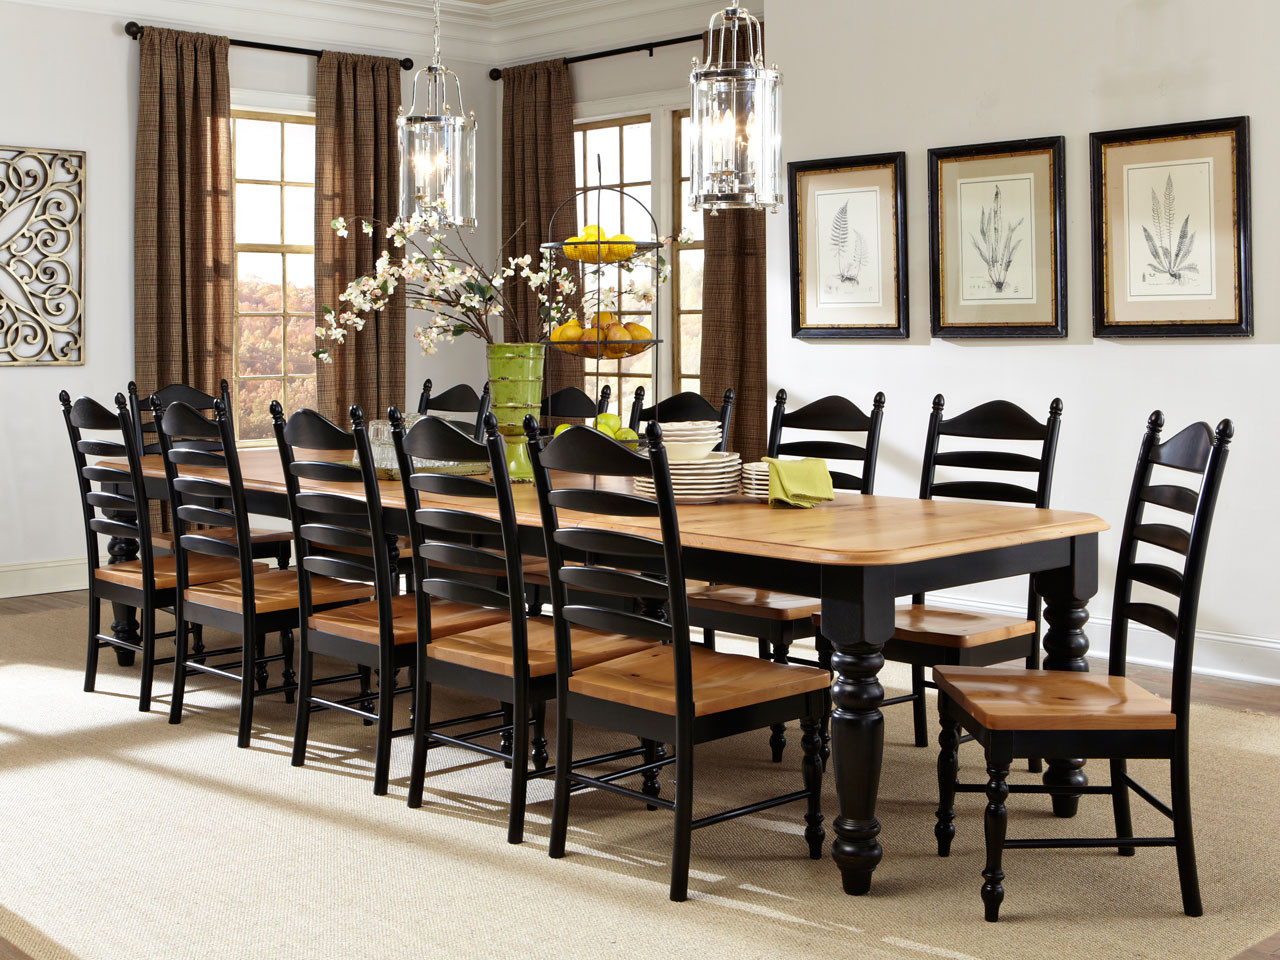 Glenwood Dining table and 4 chairs $499 - Vintage Oak